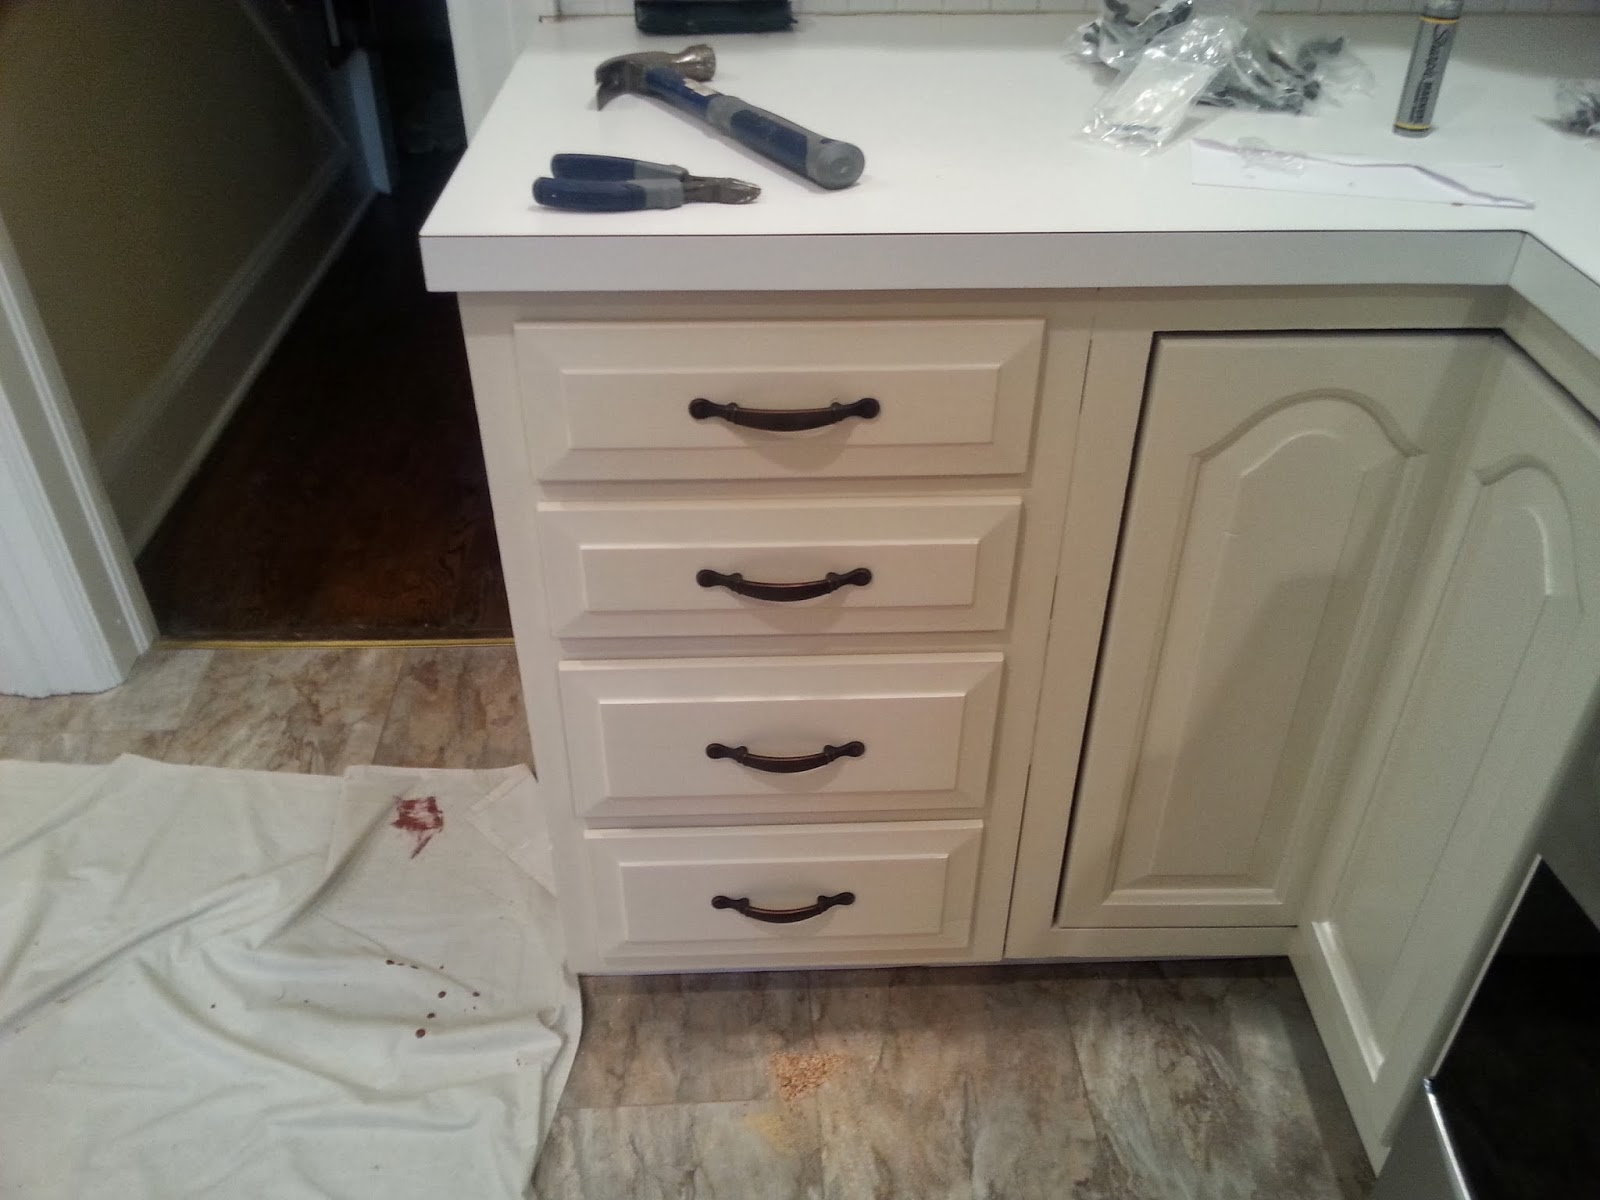 Kitchen cabinets teaneck nj - The Cabinets Were Painted With Benjamin Moore Aura Semi Gloss The Color Is Lamb Skin Oc 3 Three Finish Applications Were Performed This Took 2 Days